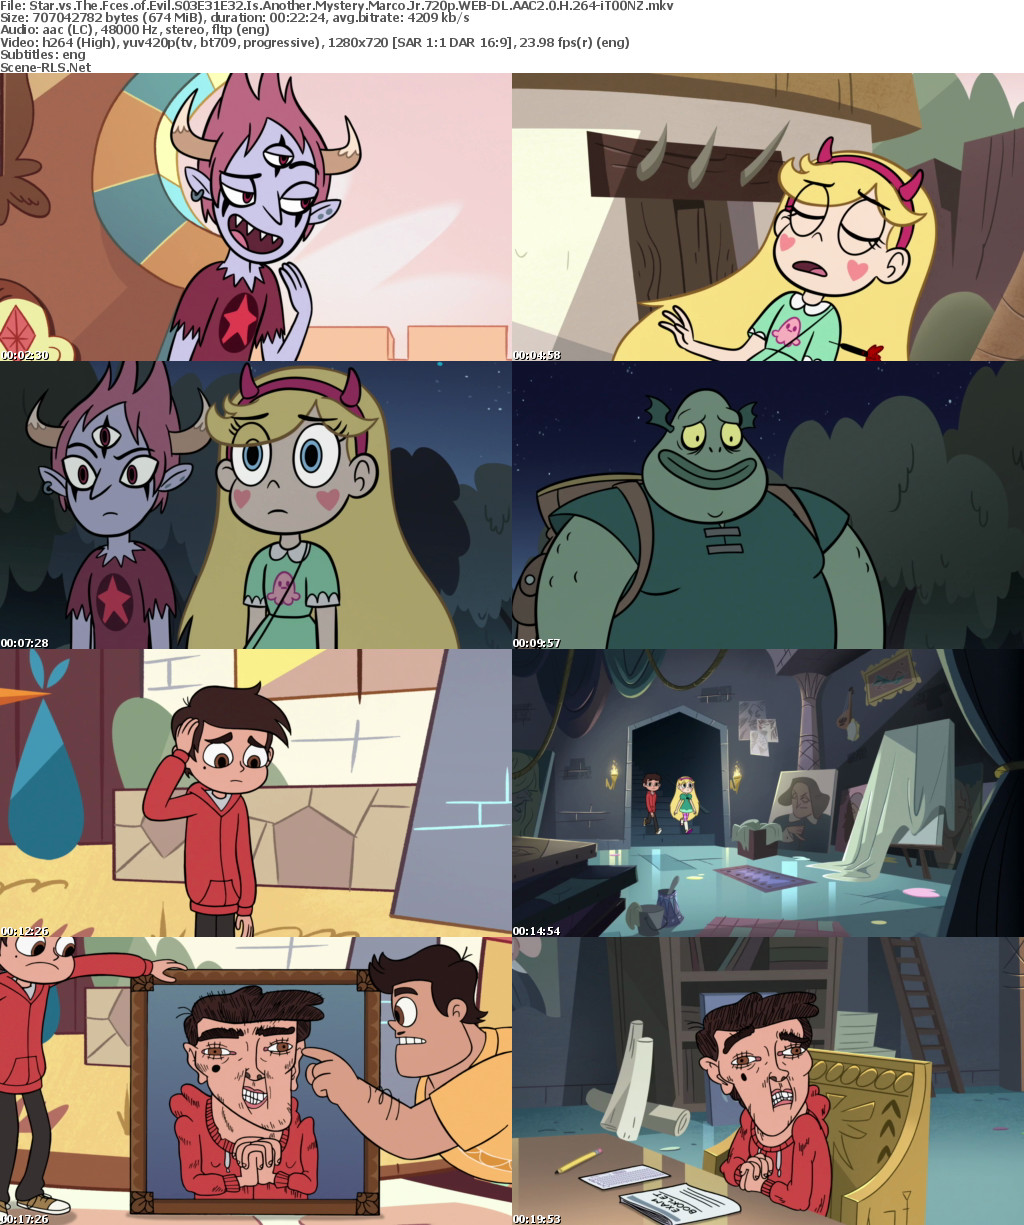 Star vs The Forces of Evil S03E31E32 Is Another Mystery-Marco Jr ...